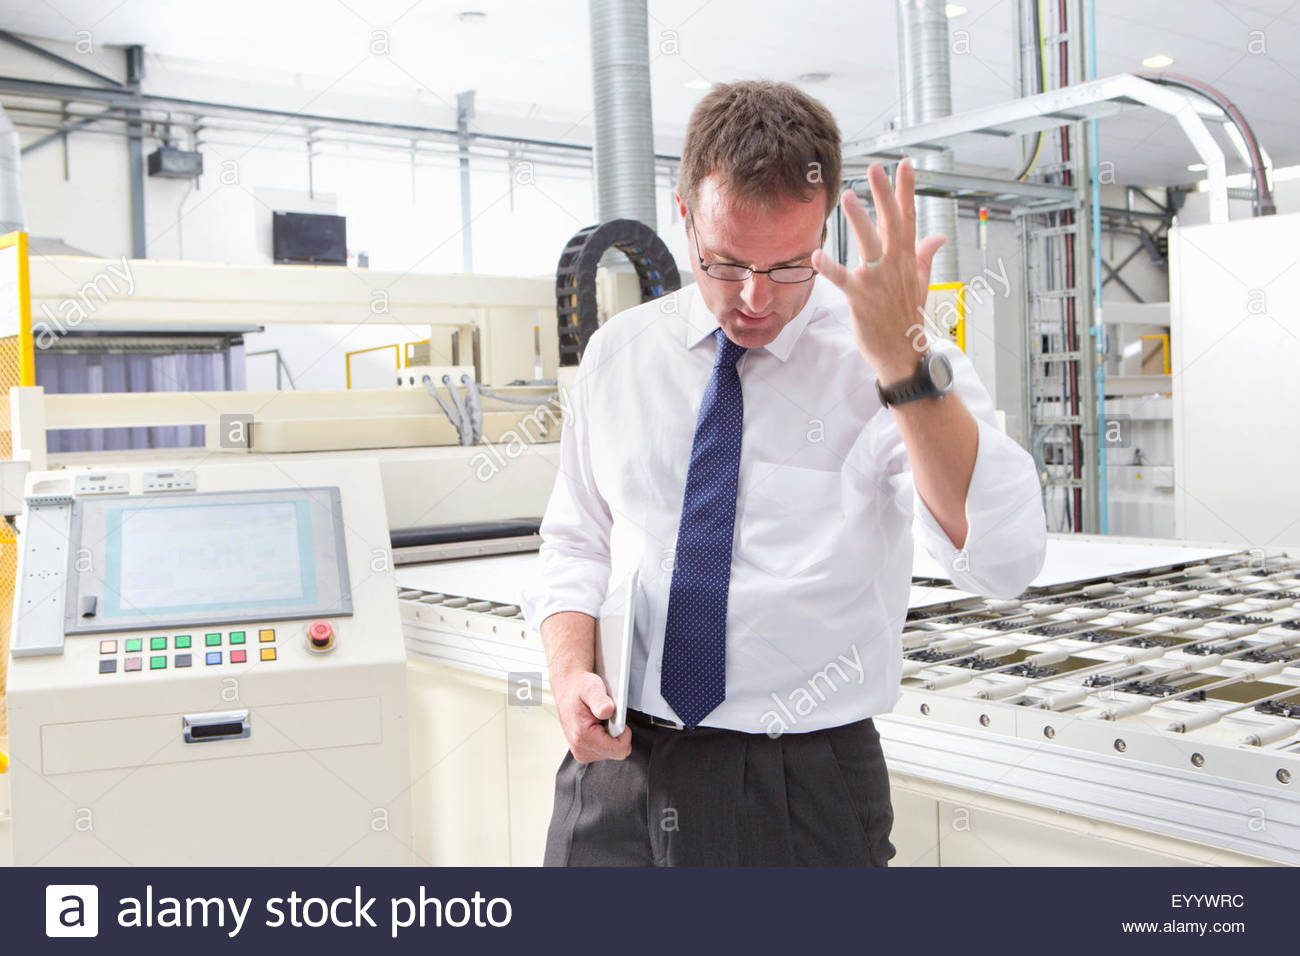 Frustrated Businessman in solar panel factory production line - Stock Image